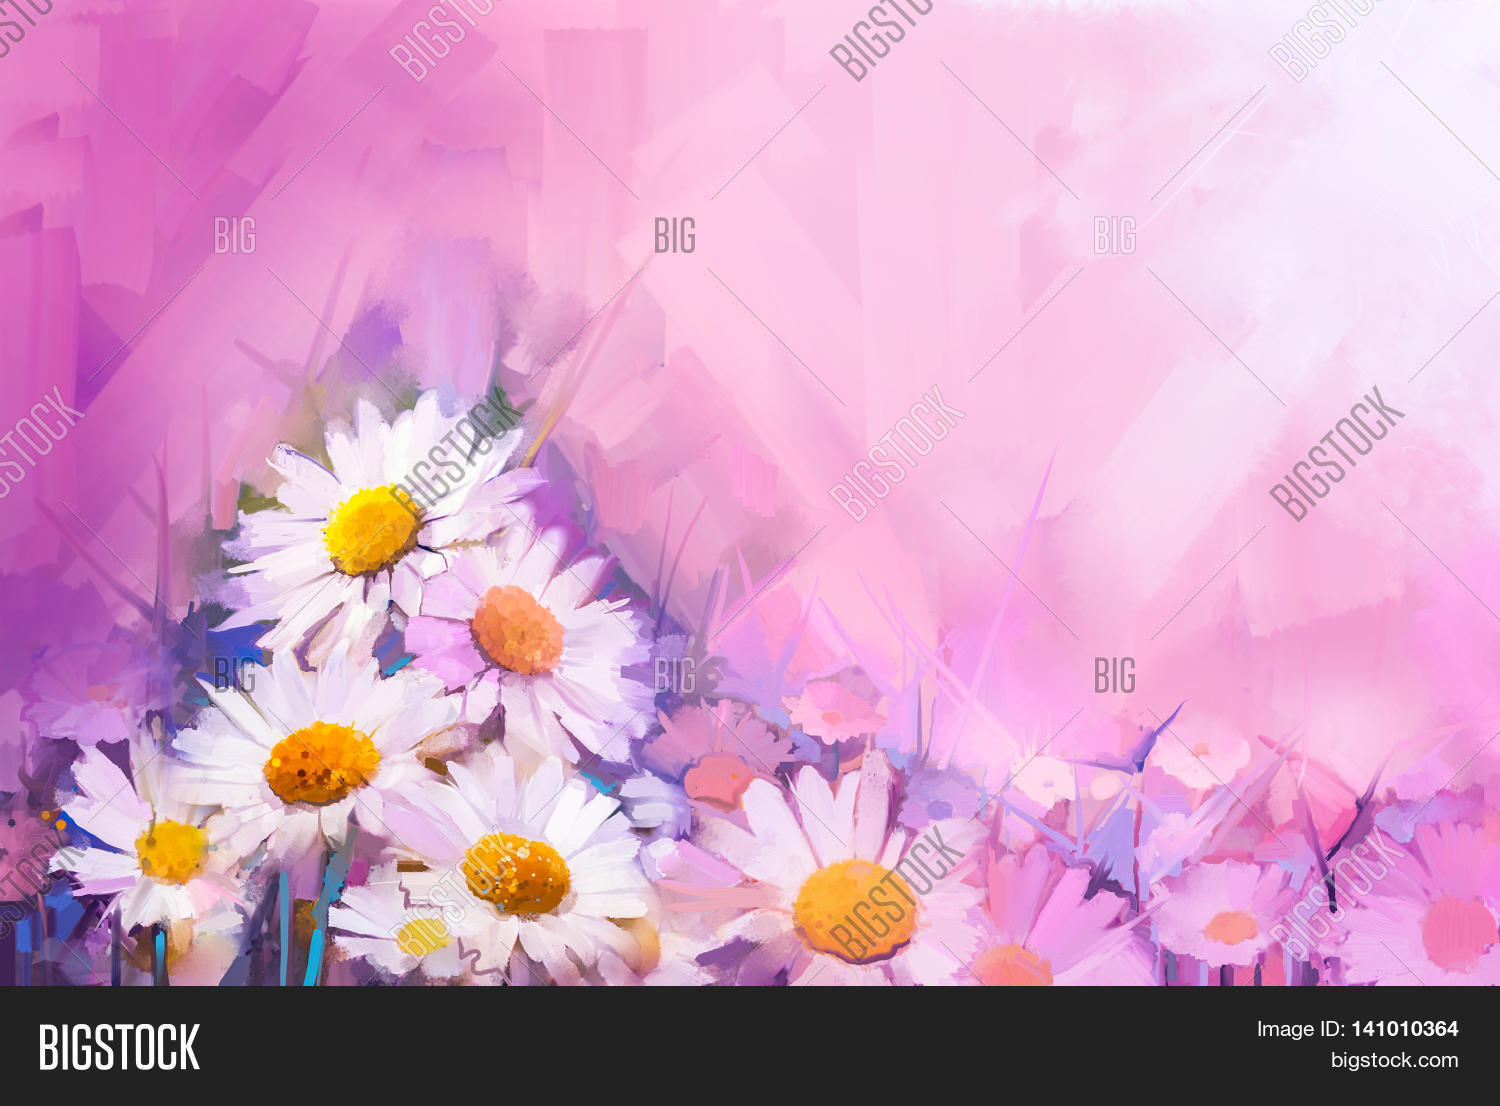 Oil Painting Flowers Image Photo Free Trial Bigstock